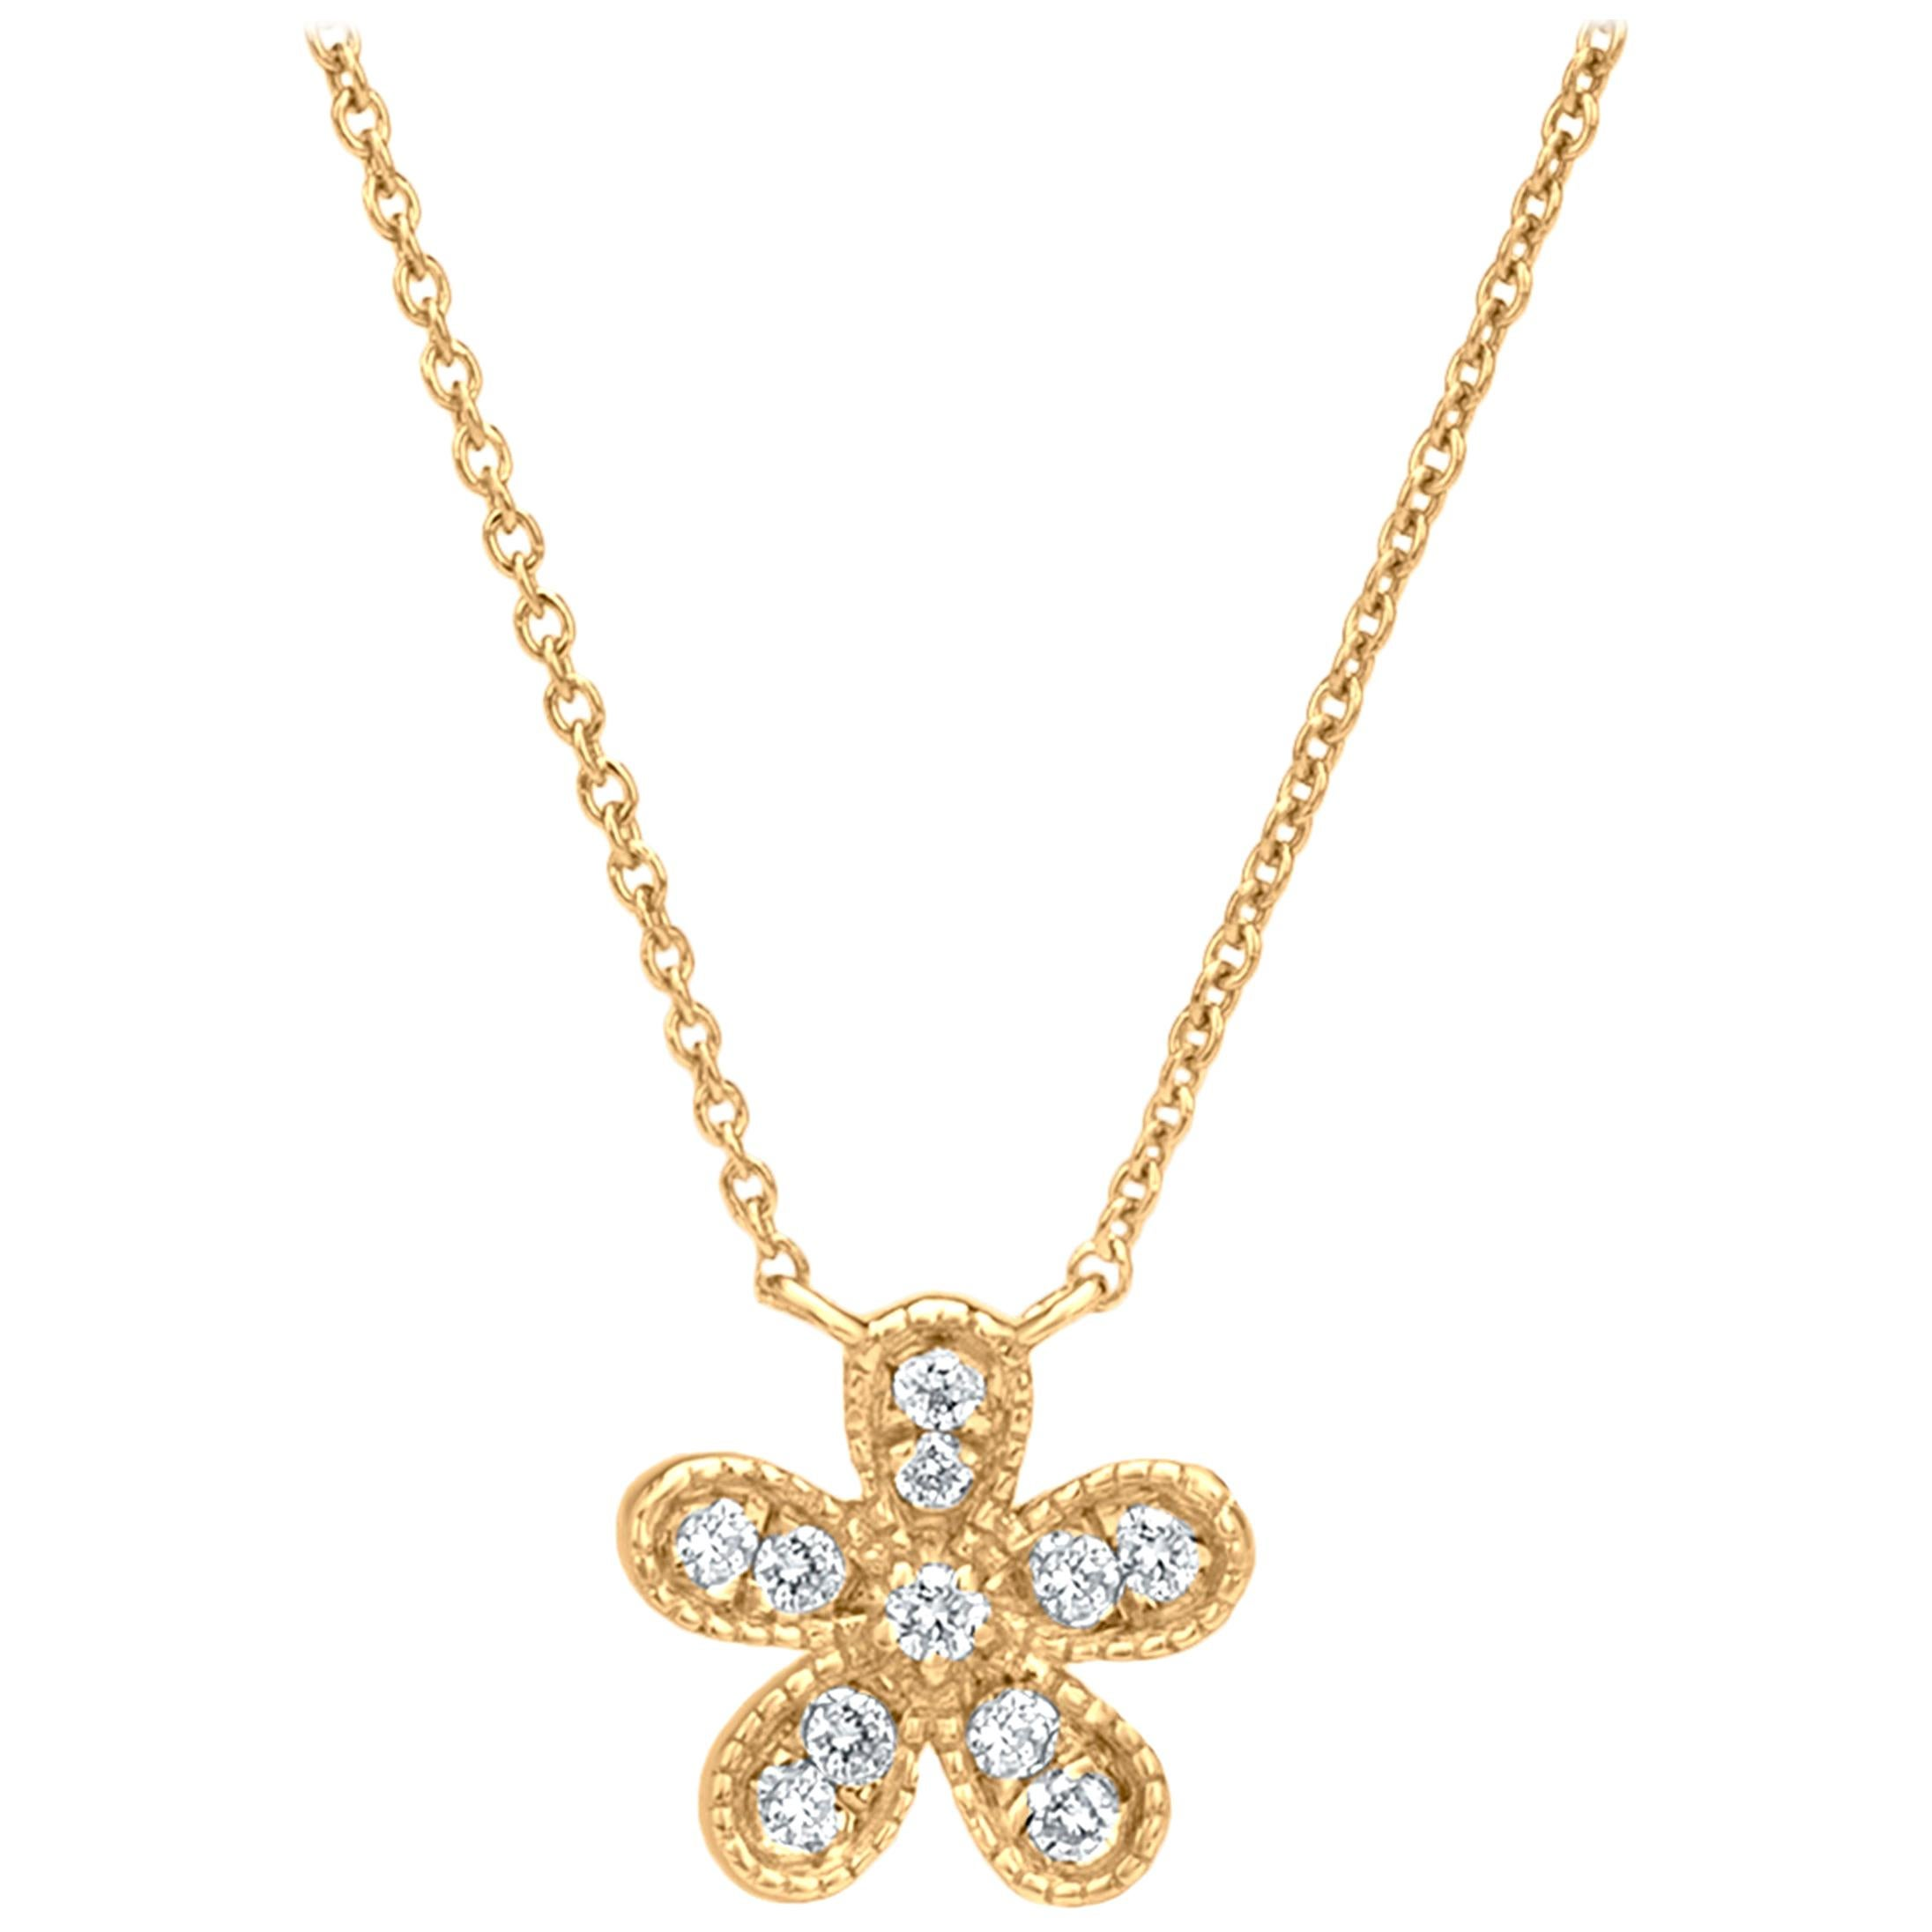 Flower Diamond Pendant Necklace in 18K Yellow Gold